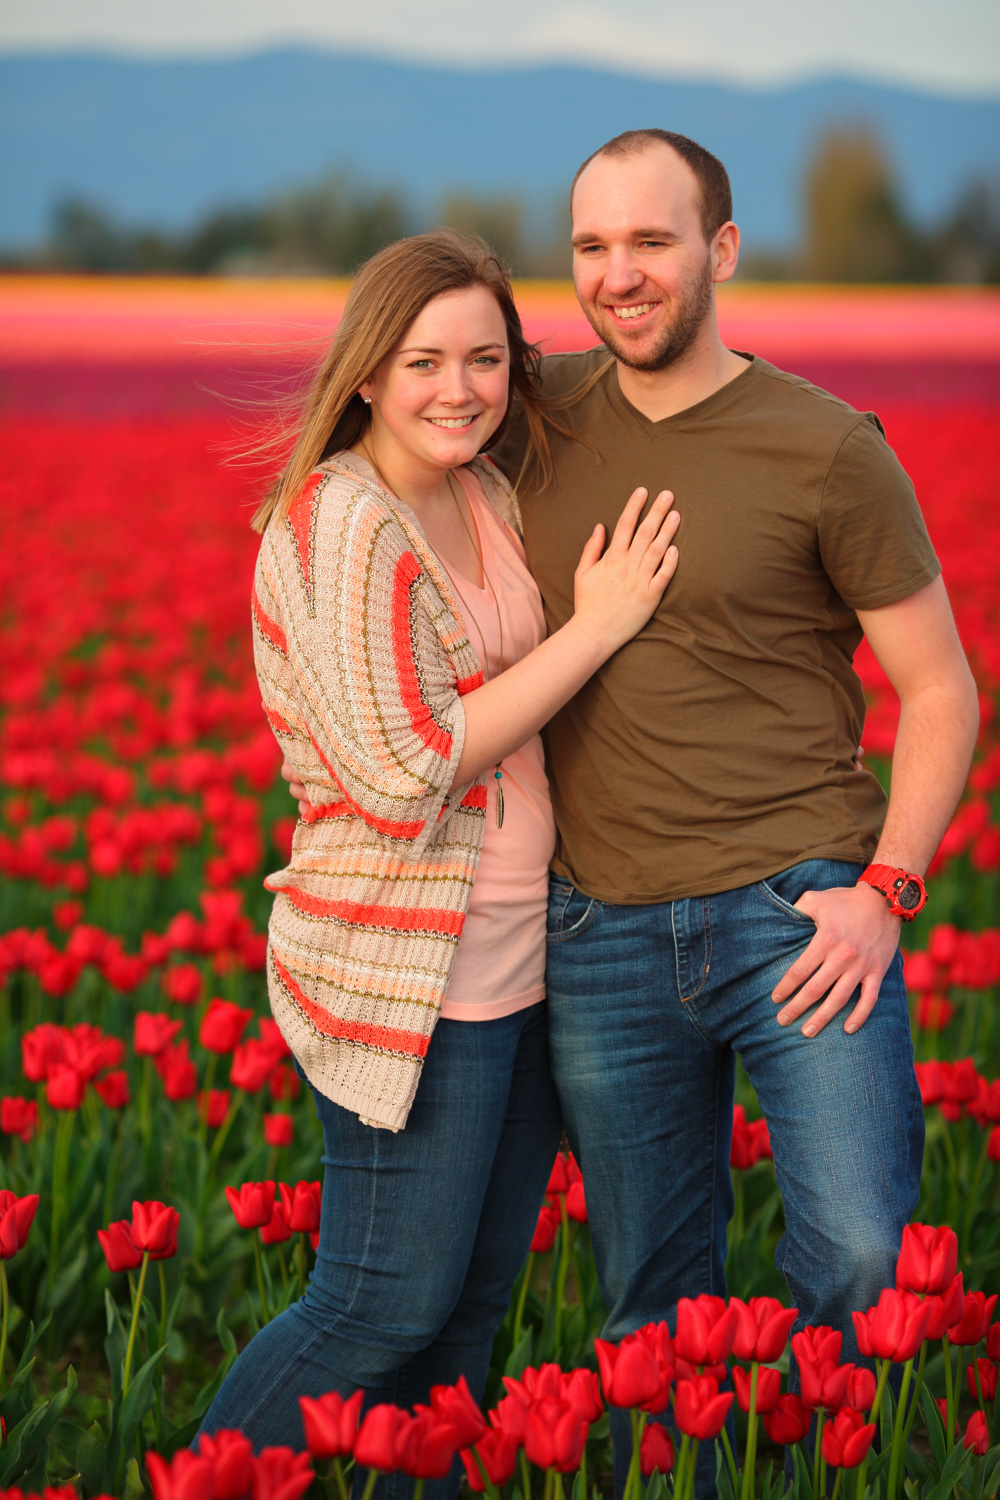 Engagement+Photos+Tulip+Fields+LaConner+Washington04.jpg